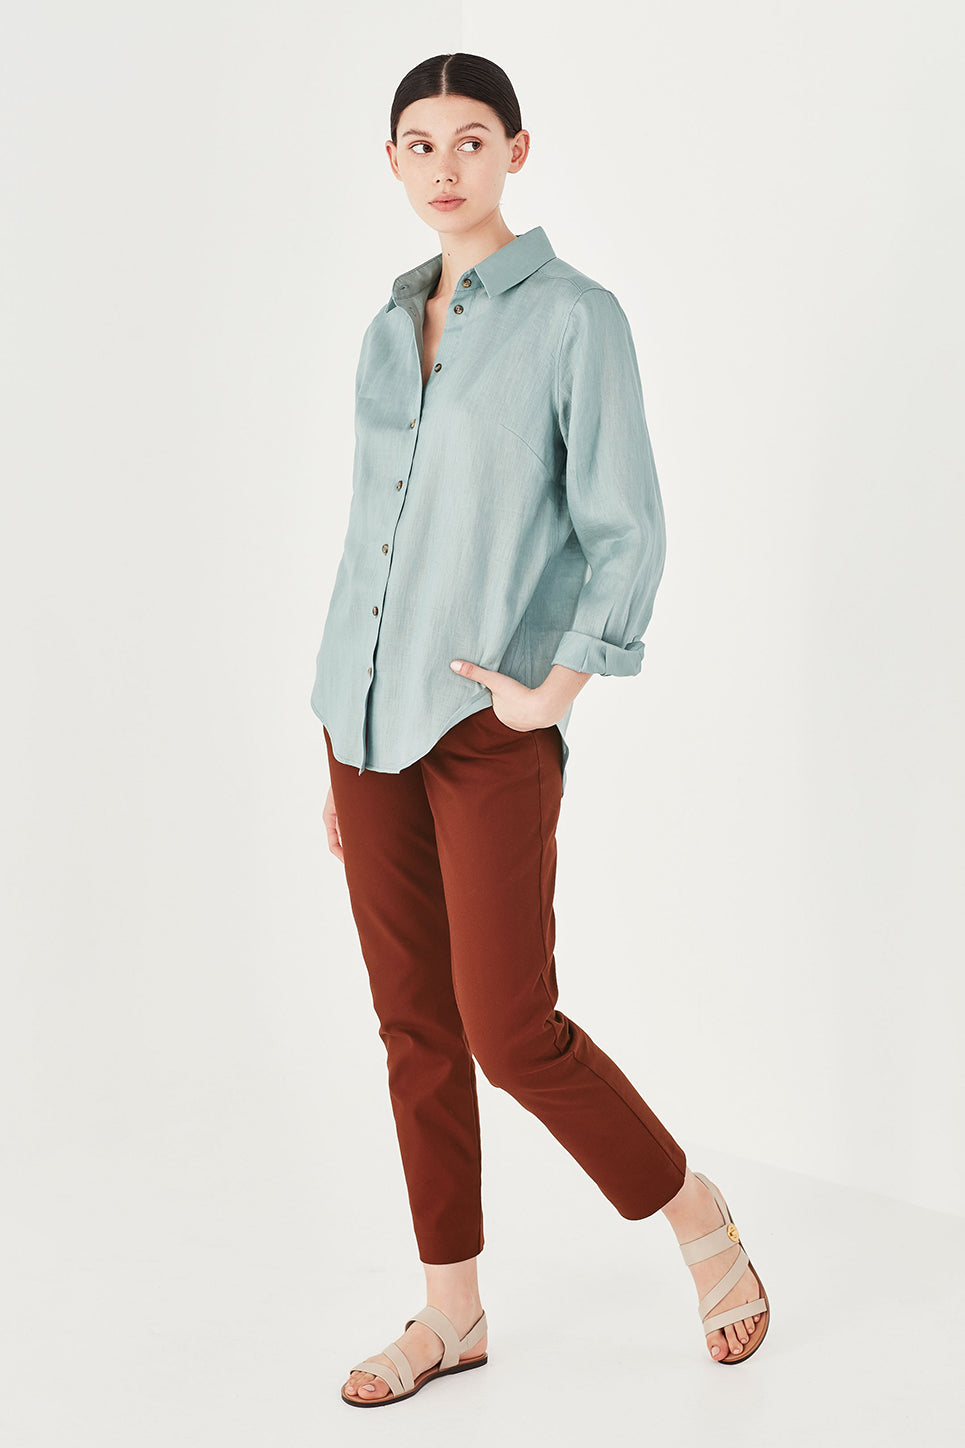 The Turret Shirt in Turquoise